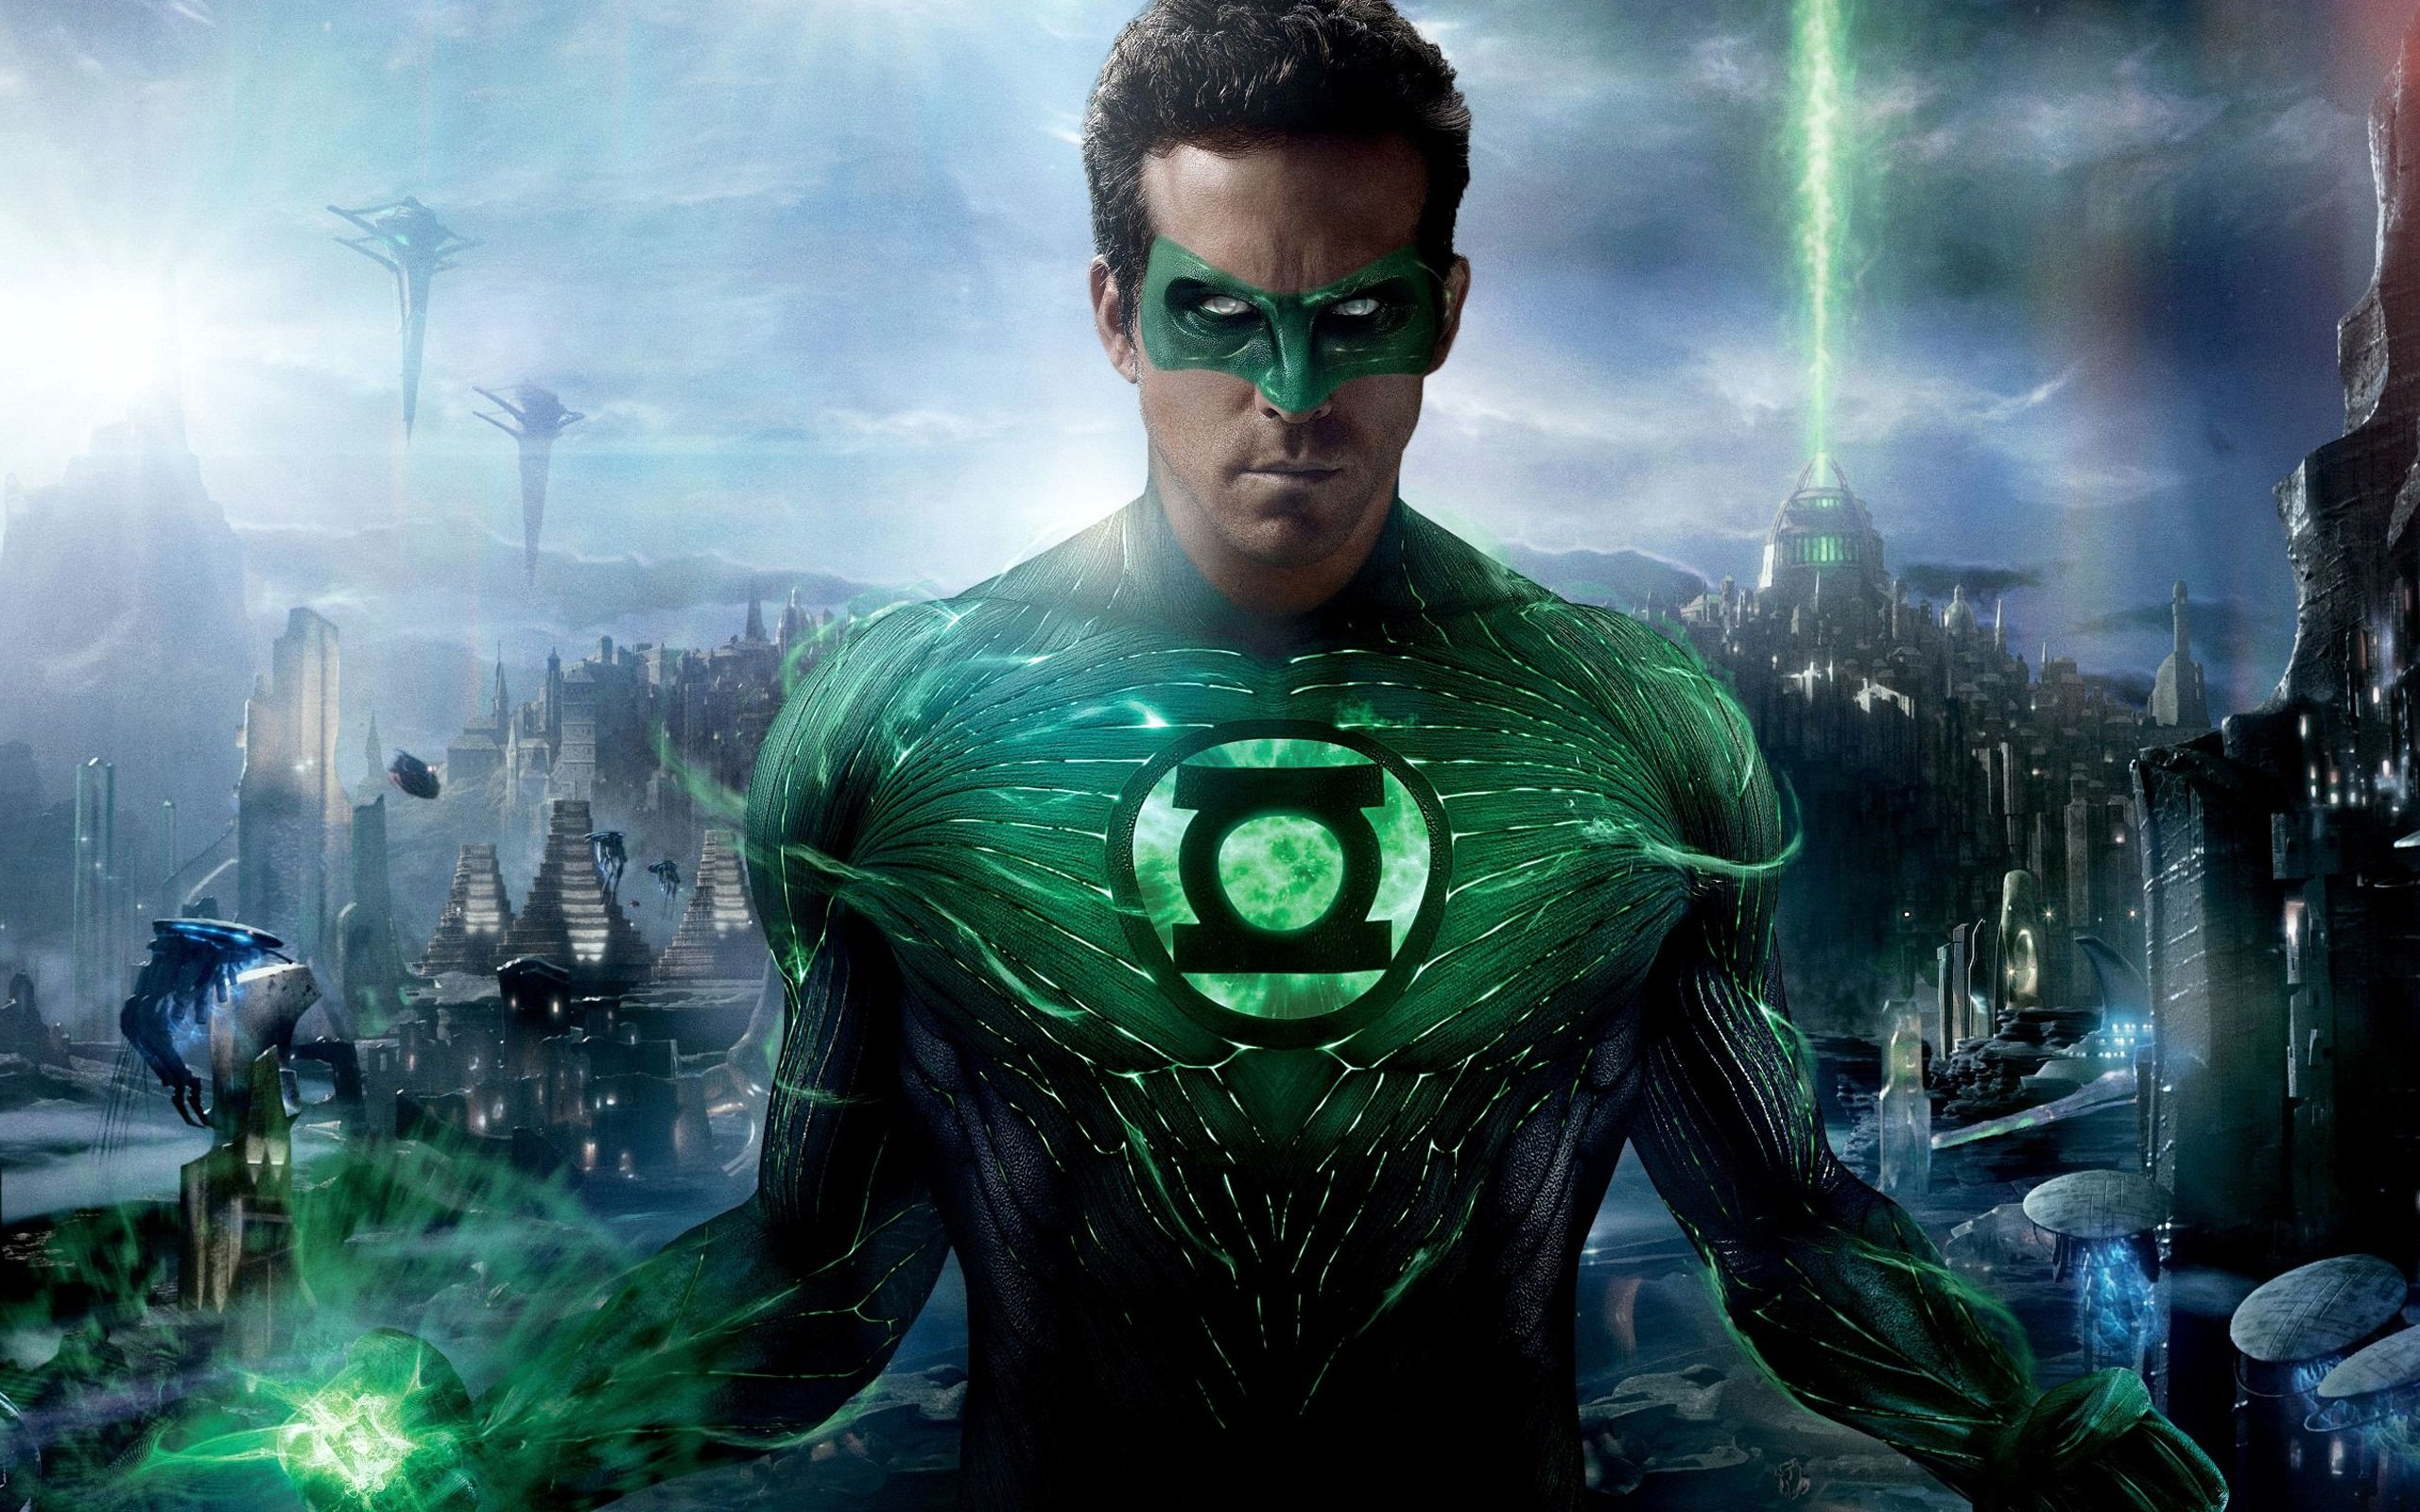 Green Lantern High Resolution Wallpapers HD Wallpapers 2560x1600